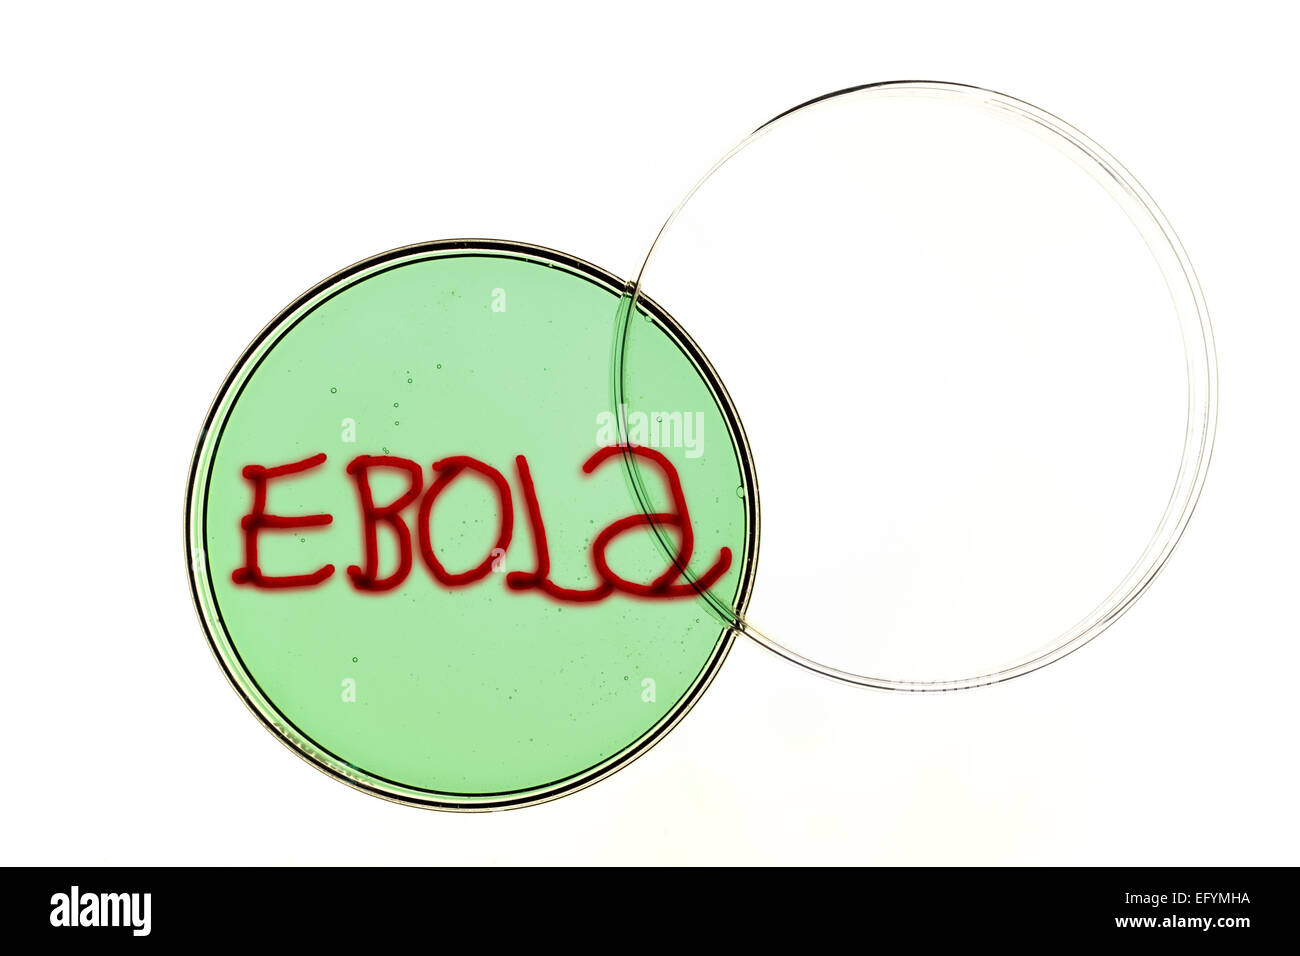 Ebola virus spelling out ebola in a petri dish. - Stock Image